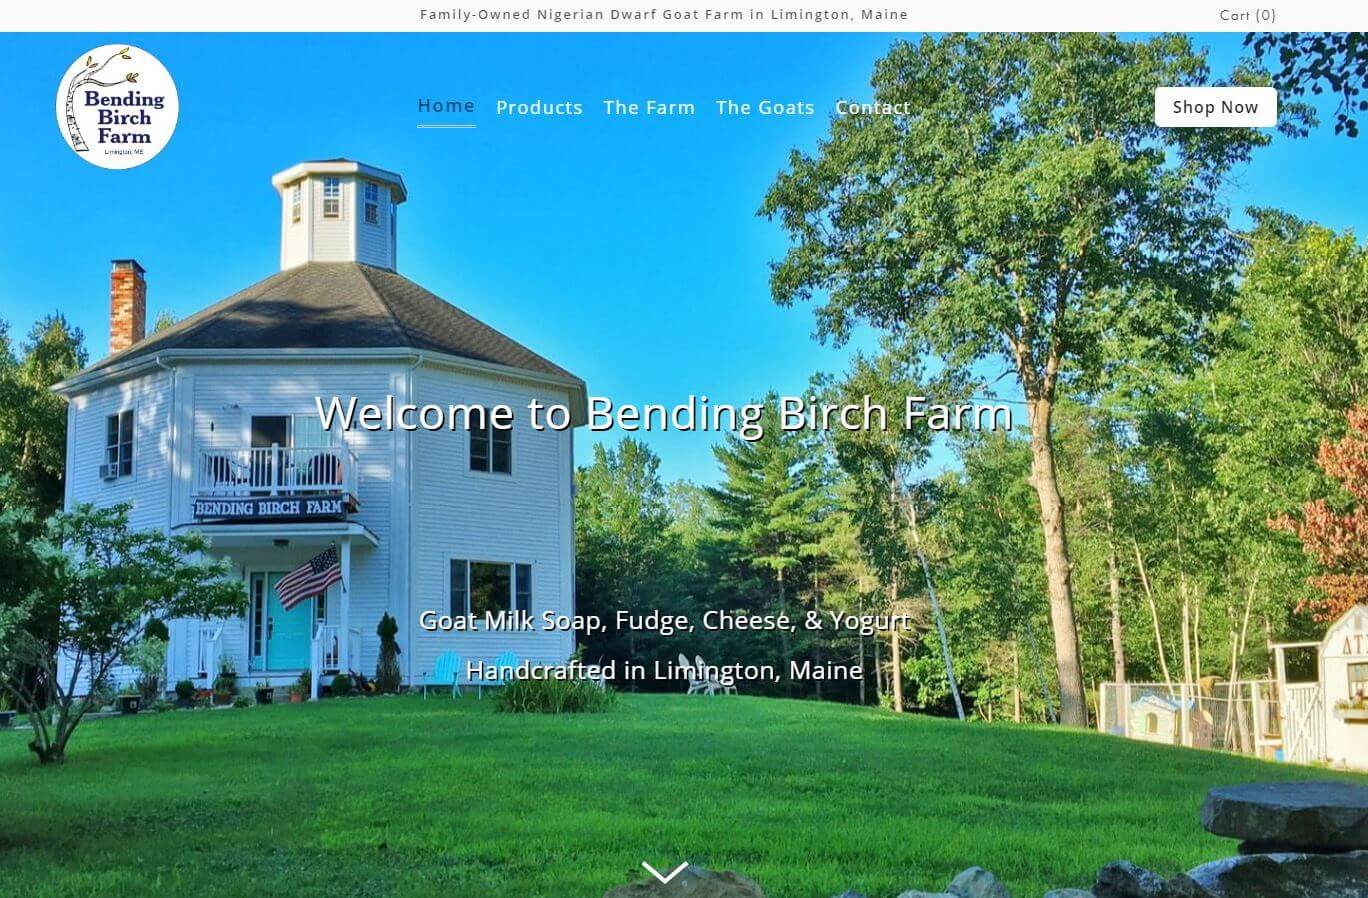 Bending Birch Farm Website